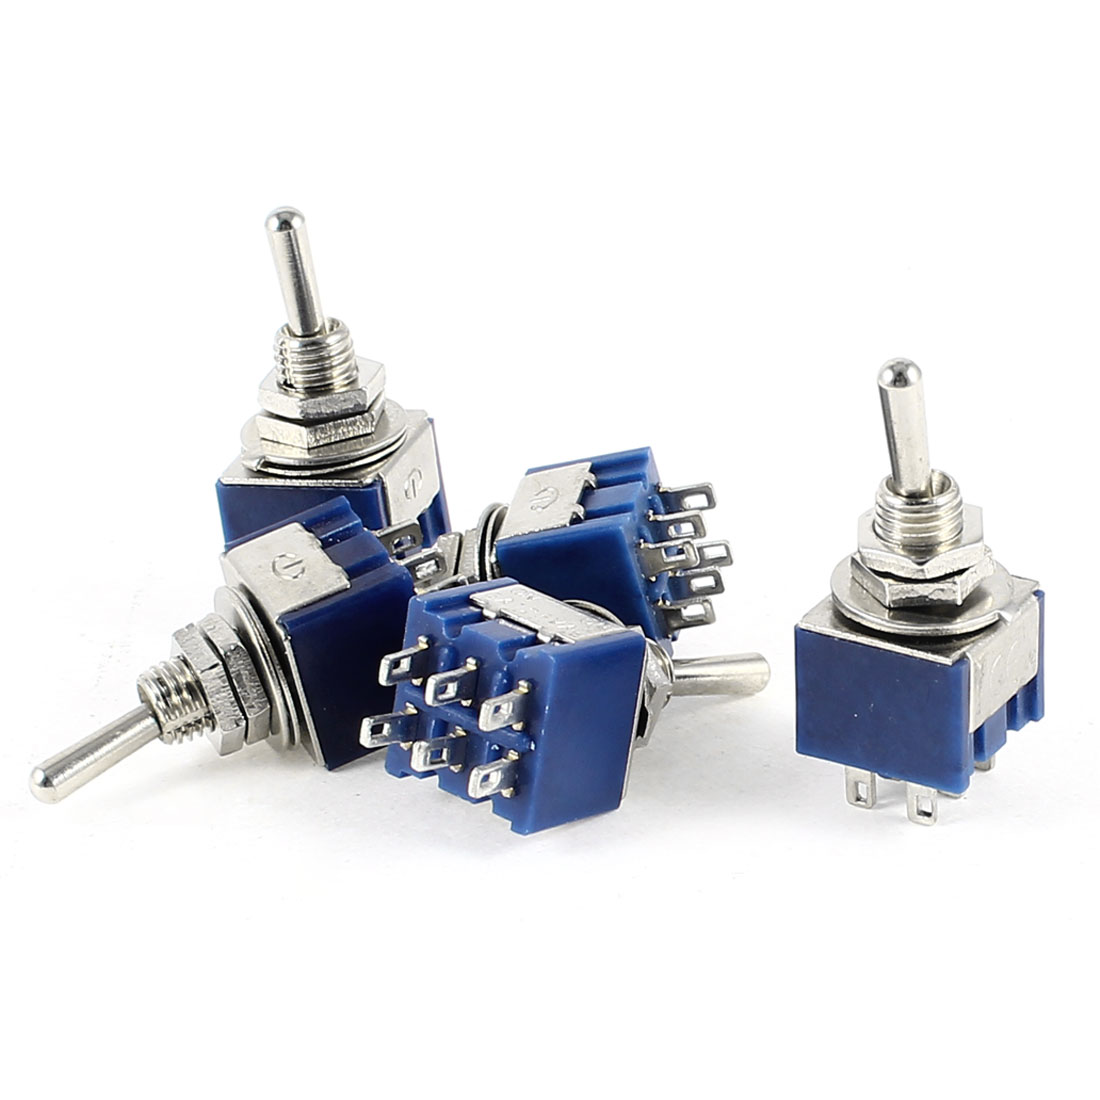 5 Pcs AC 6A 125V DPDT 2 Position ON/ON Latching Toggle Switchs